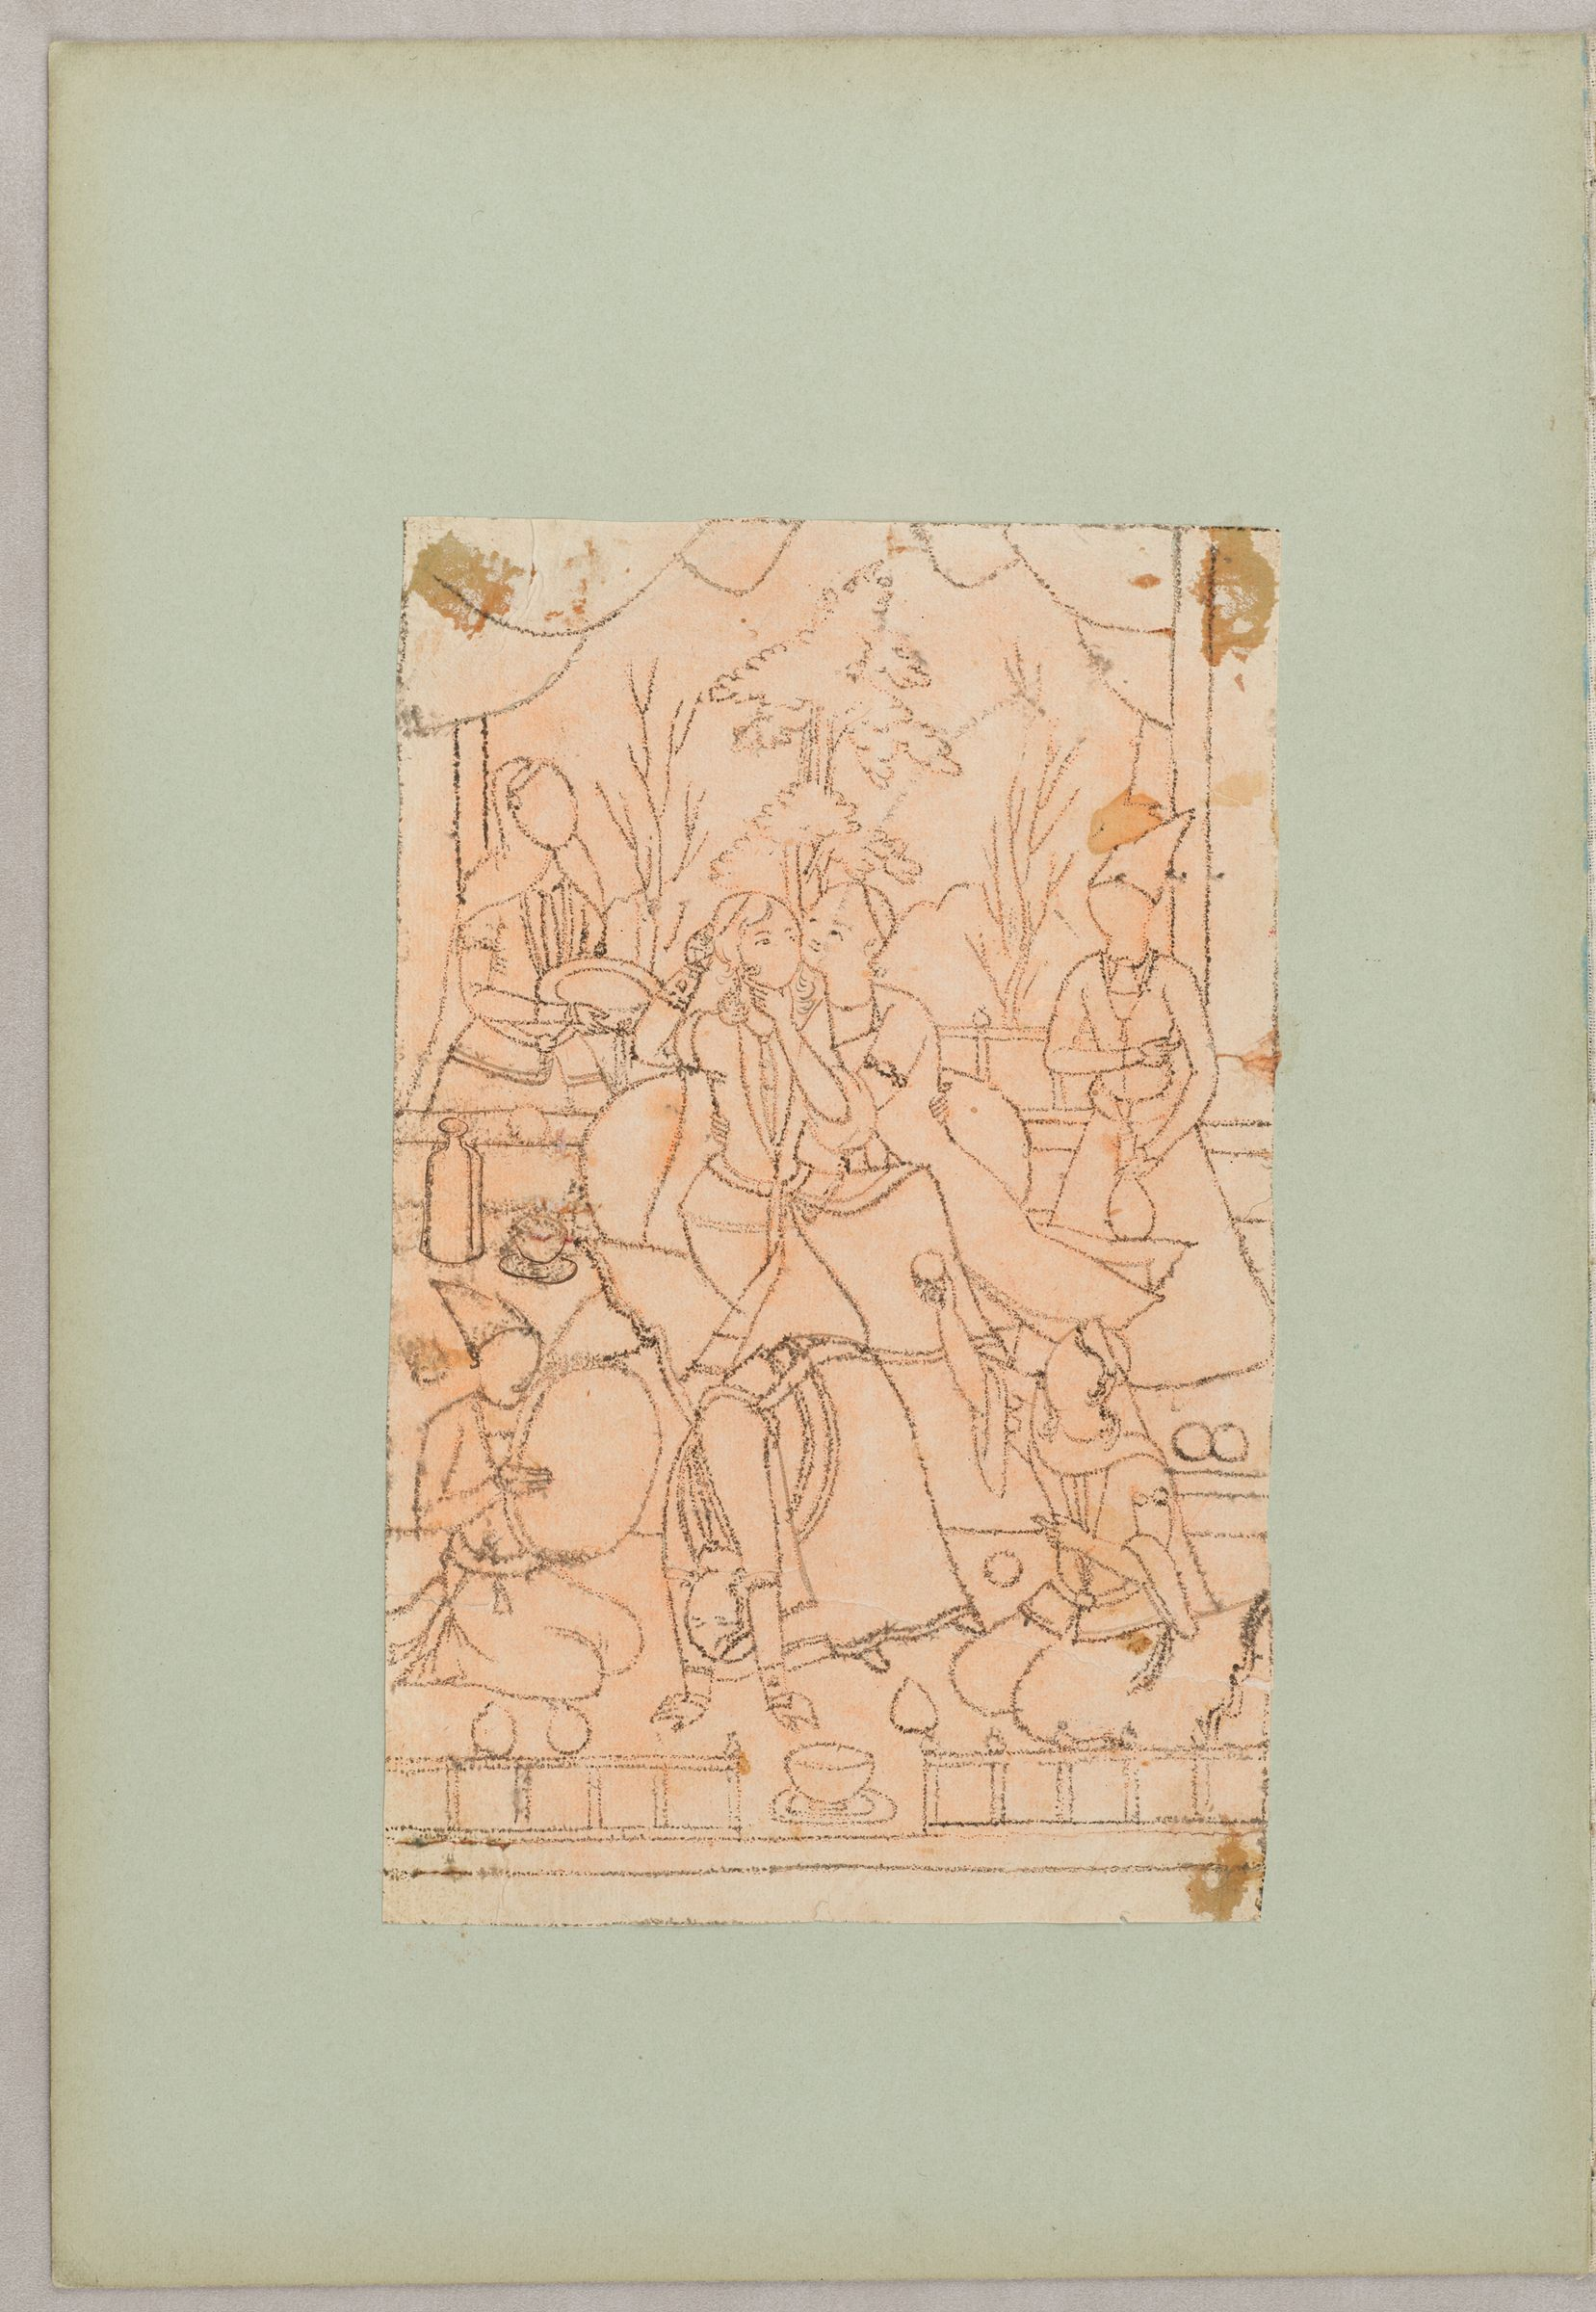 Folio 7 From An Album Of Artists' Drawings From Qajar Iran: Embracing Couple On Terrace, Attended By Servants, Dancers, And Musicians (Recto); Standing Woman With Headscarf (Verso)